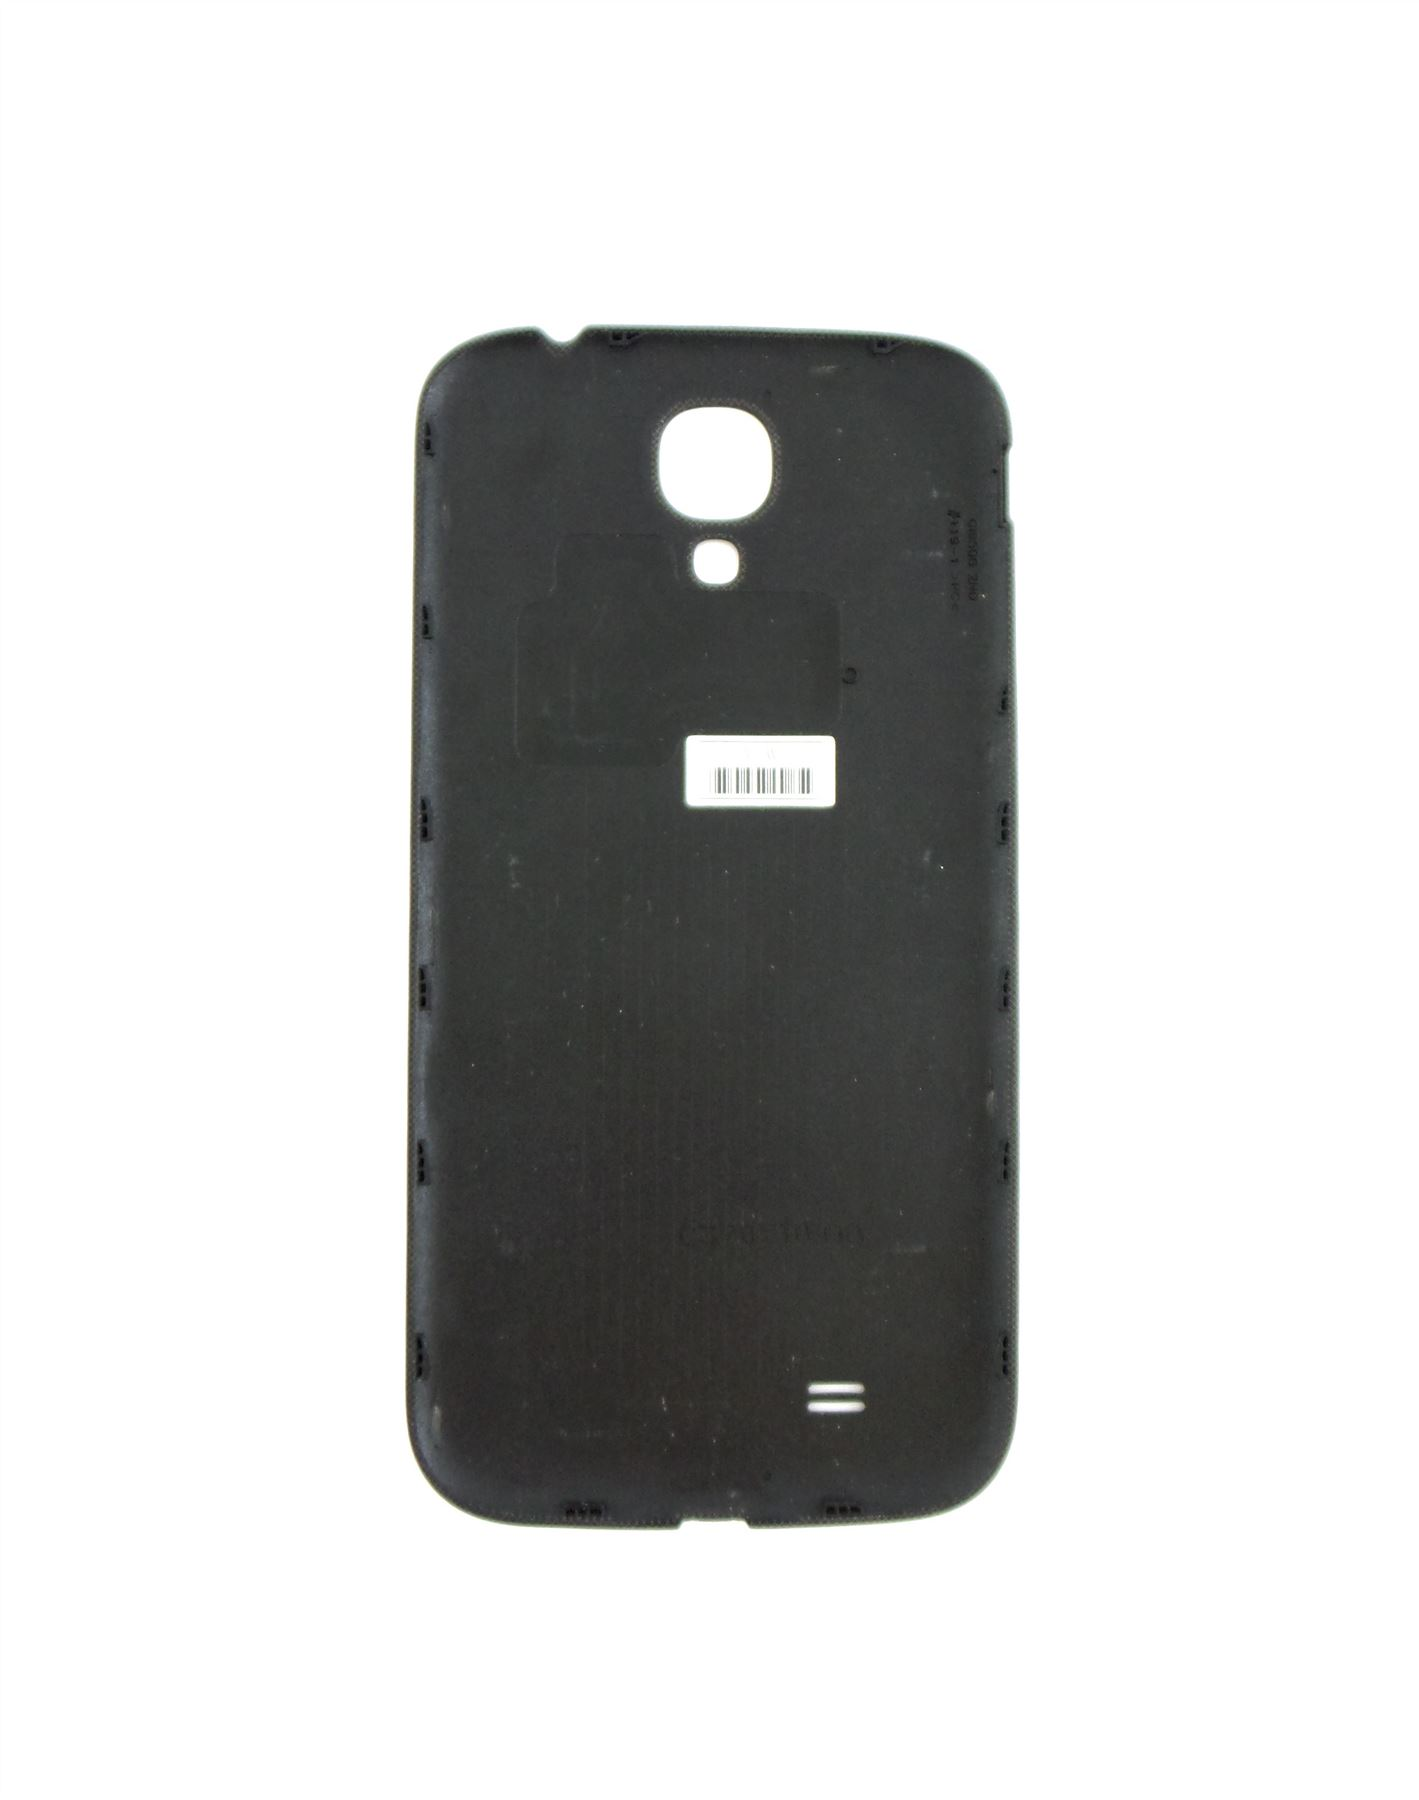 Samsung-Galaxy-S4-Authentic-Battery-Door-Cover-AT-amp-T-Verizon-T-Mobile thumbnail 49